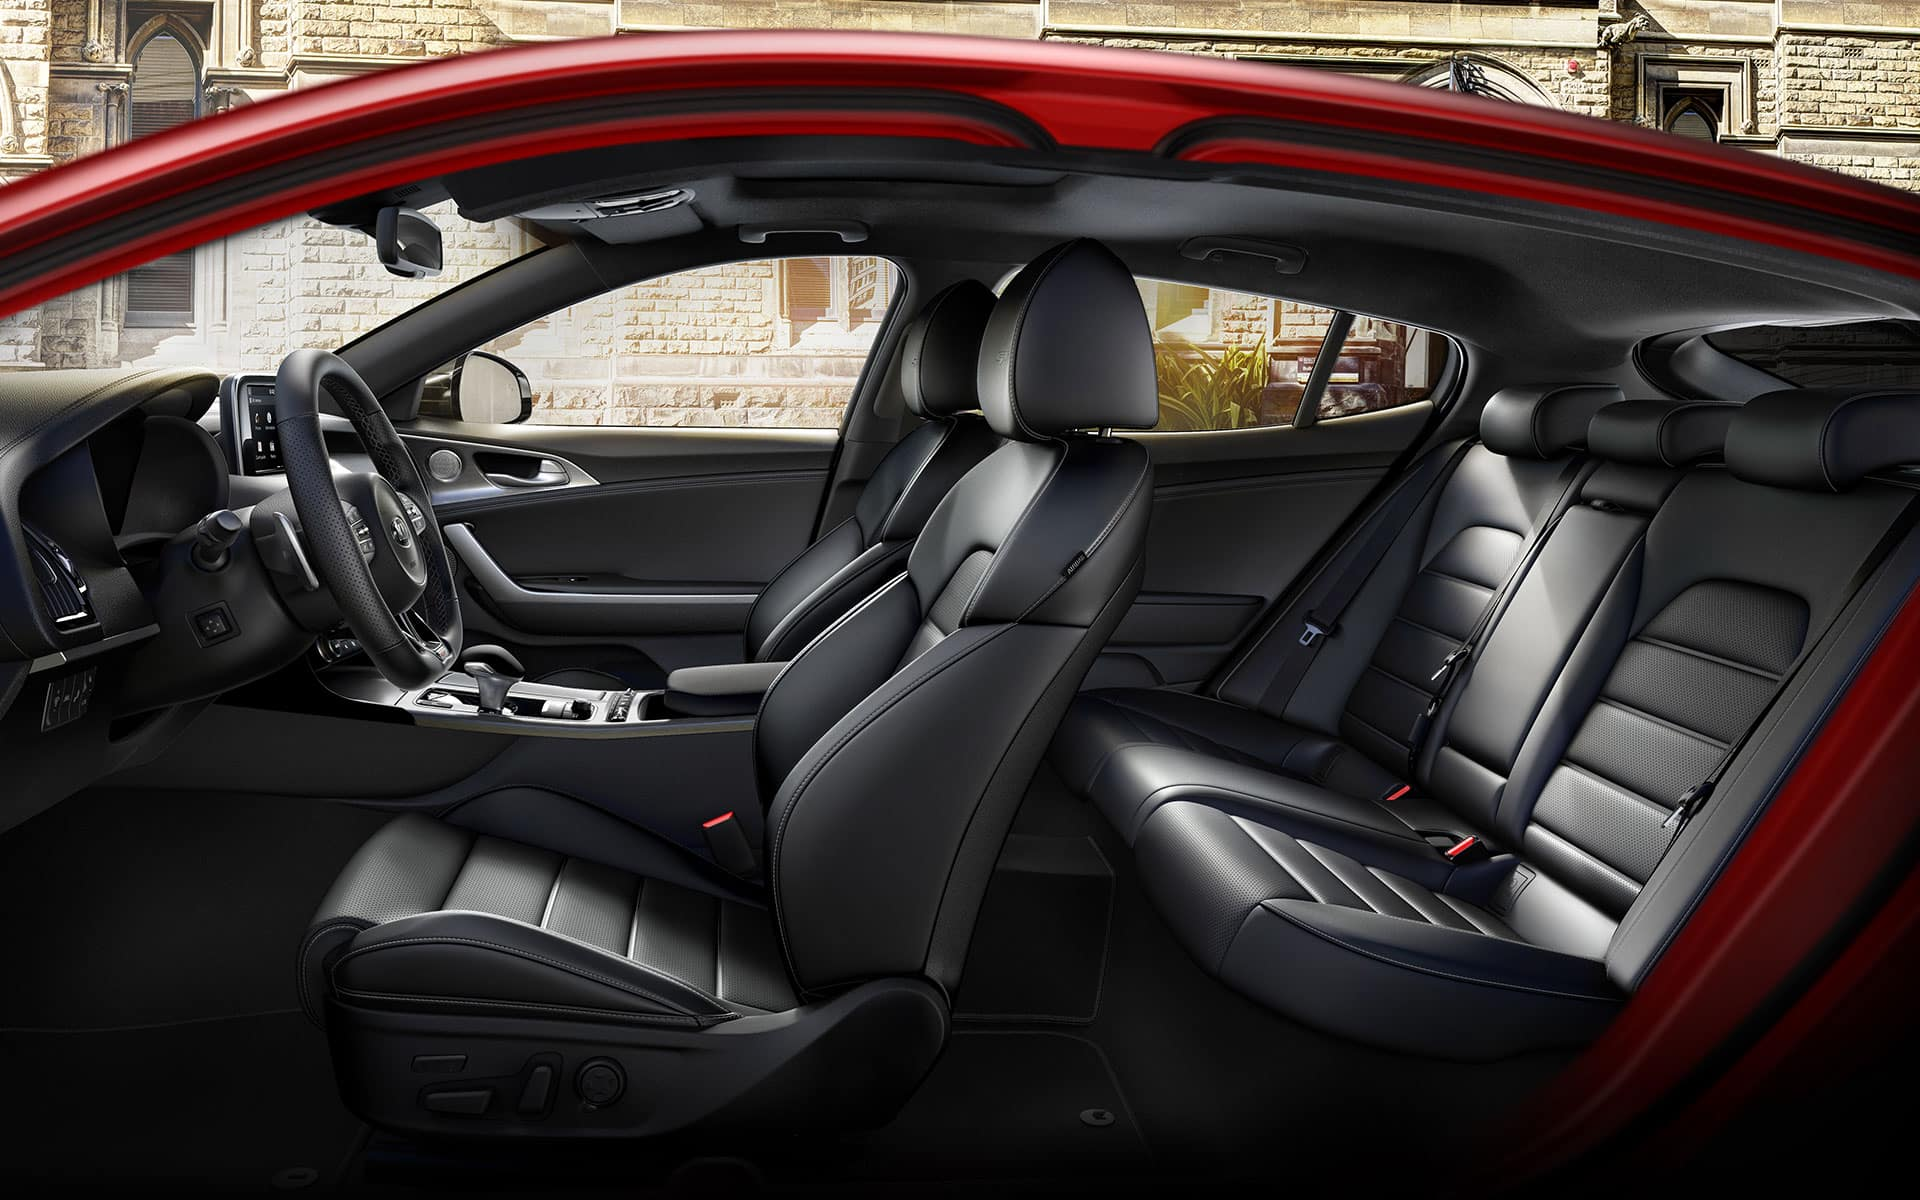 Kia Stinger comfort and spacious cabin